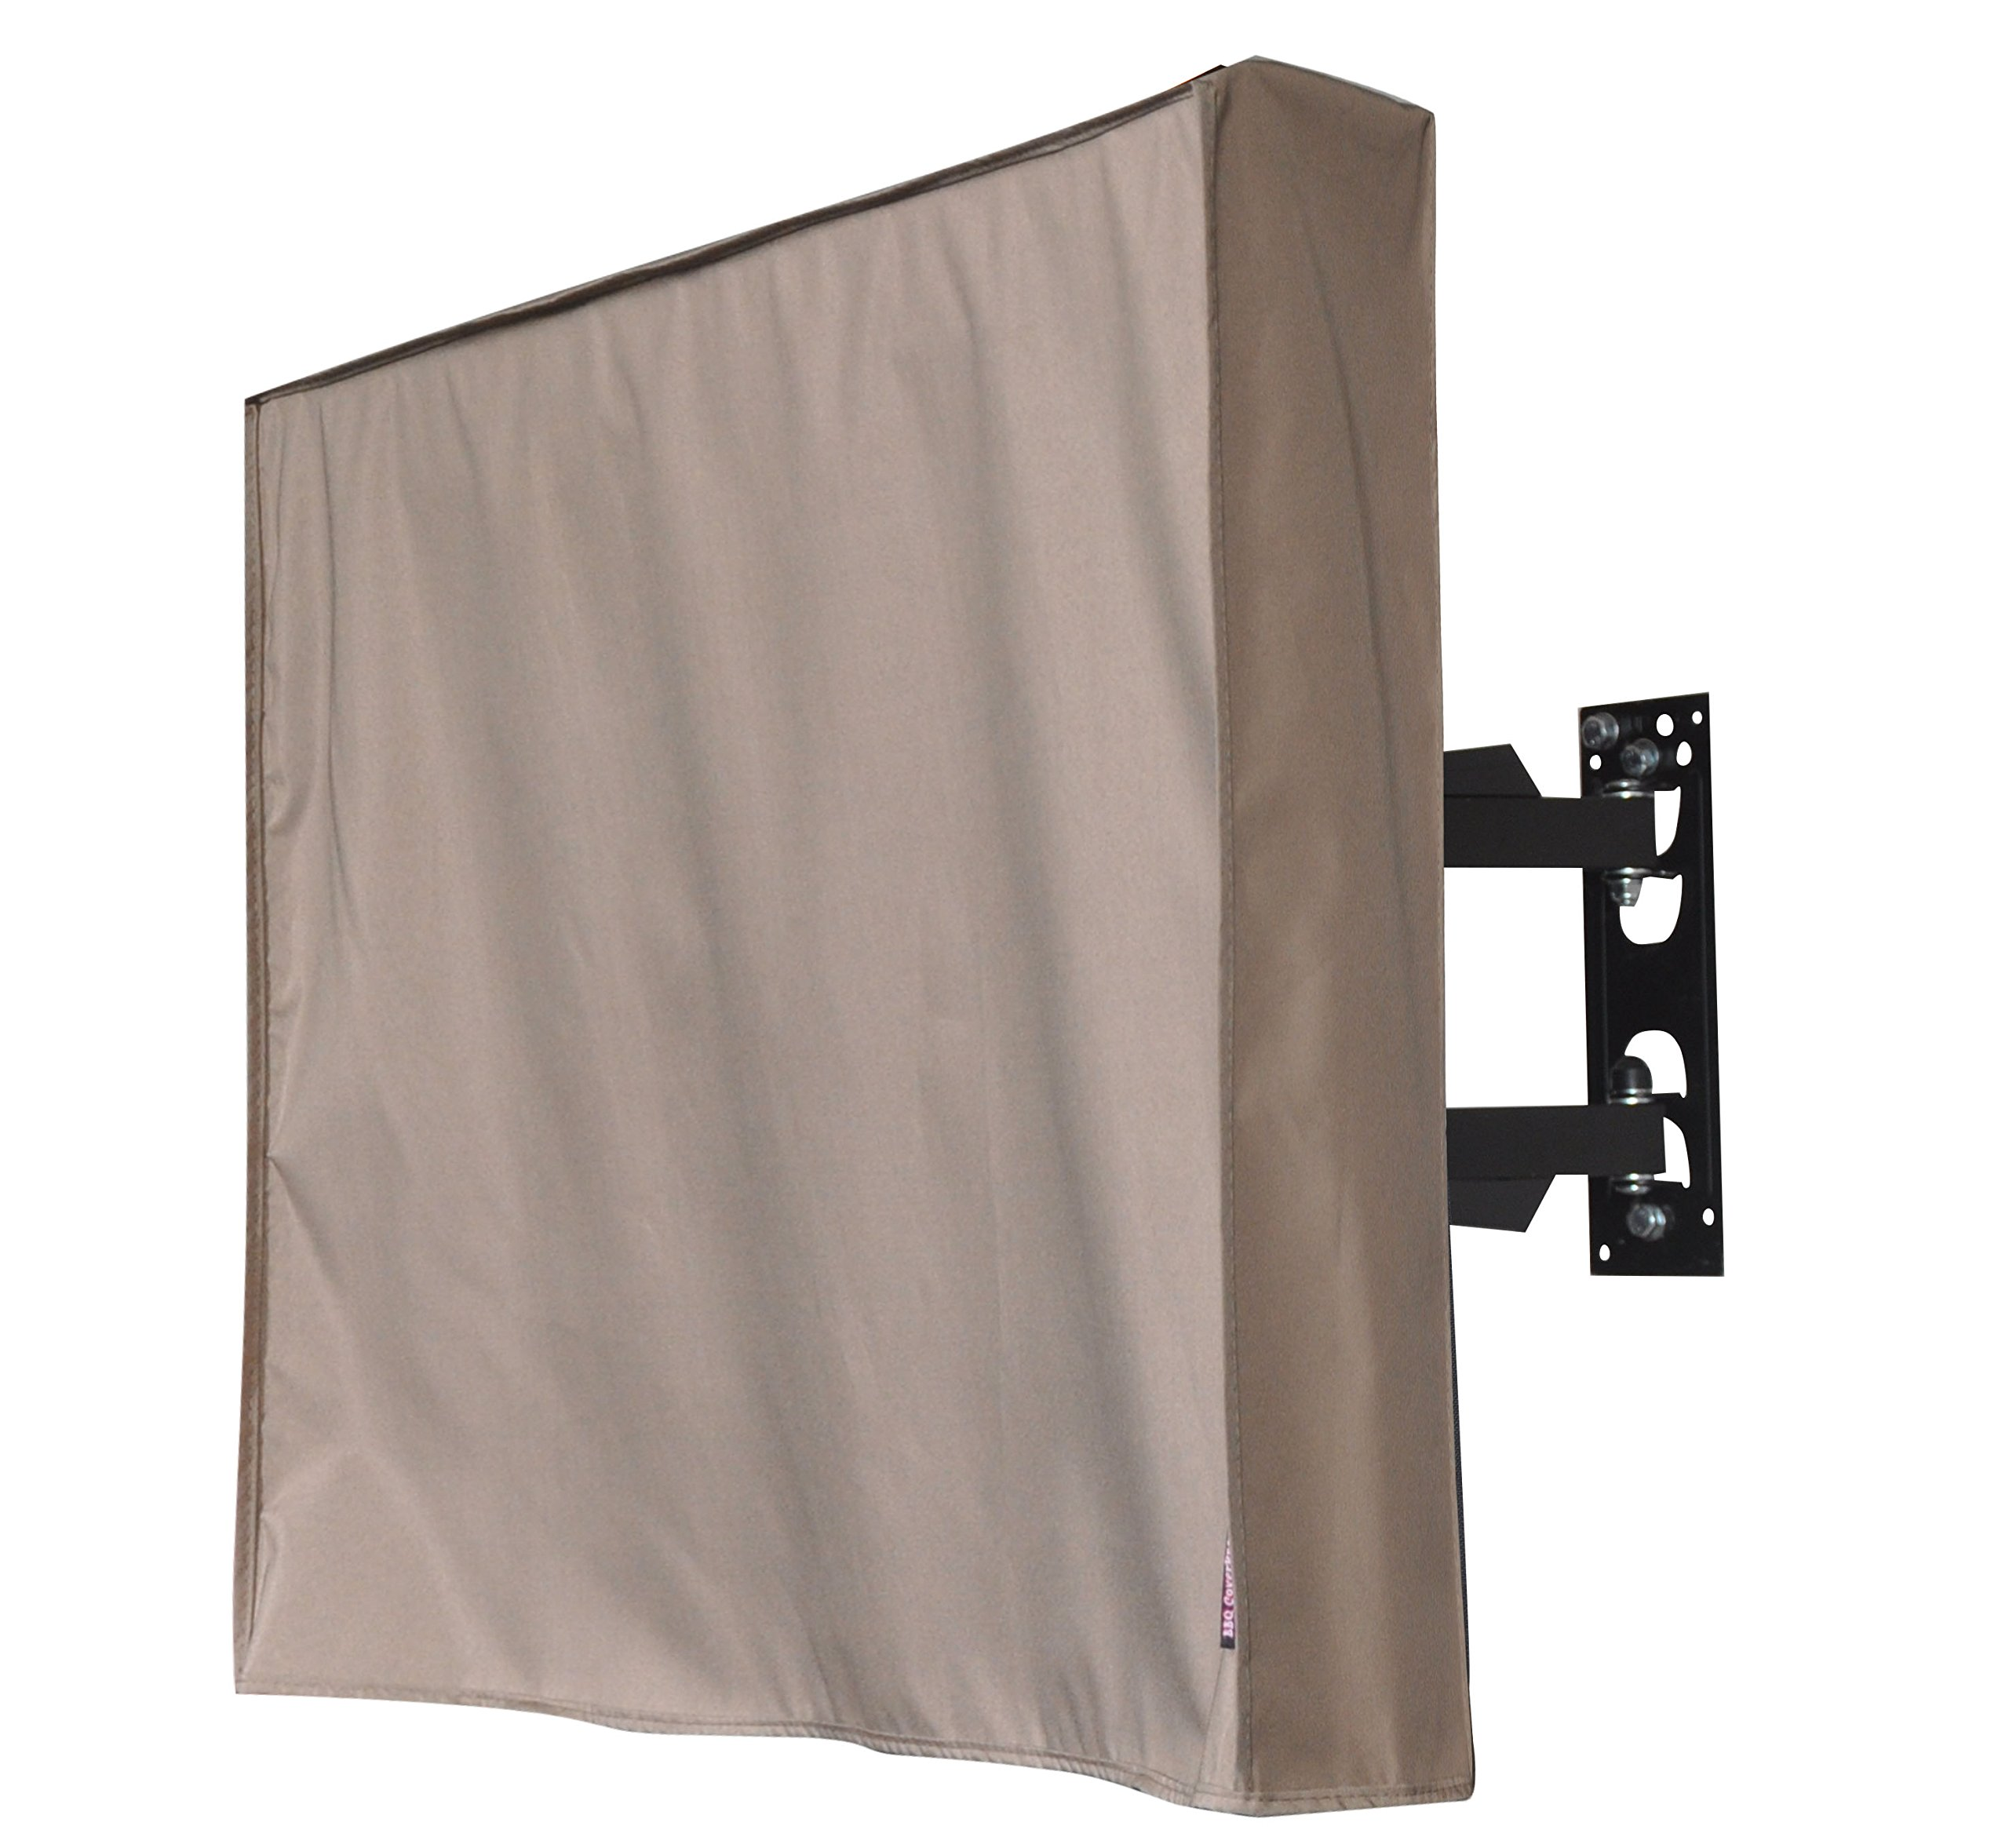 Outdoor 72''TV Cover, Brown Weatherproof Universal Protector for 72'' LCD, LED, Plasma Television Sets - Compatible with Standard Mounts and Stands. Built In Remote Controller Storage Pocket